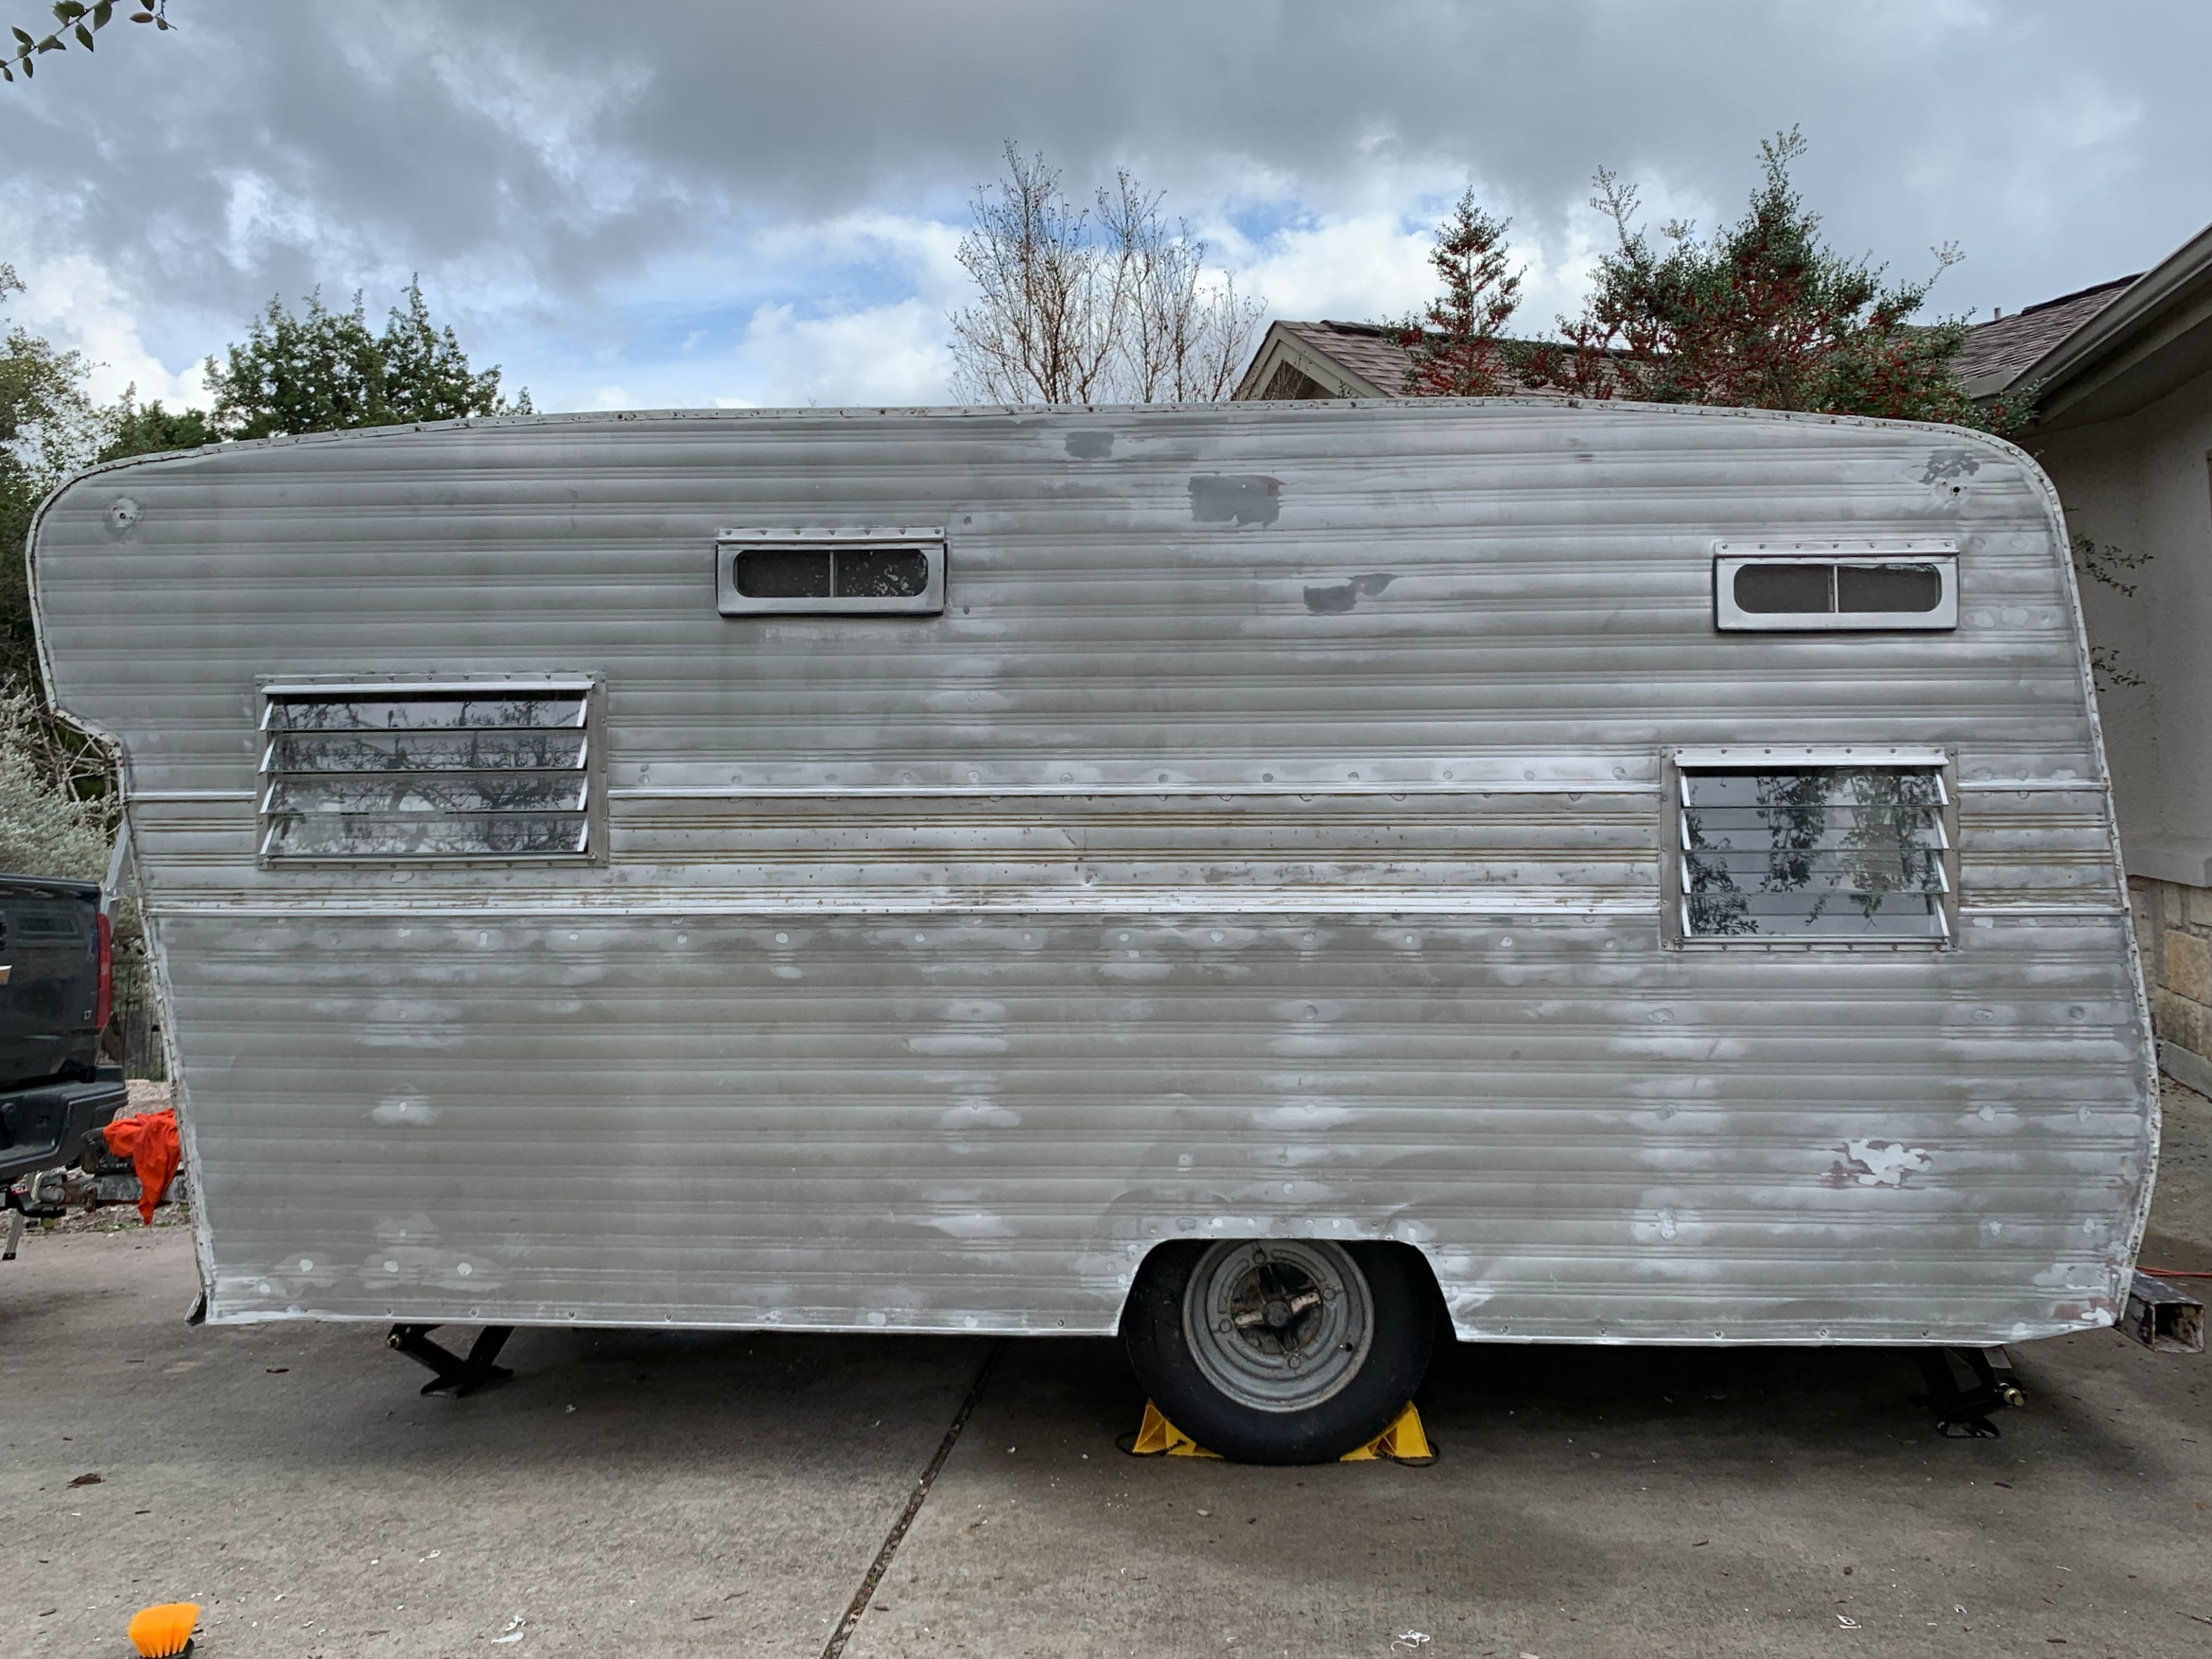 The Cameo Camper Renovation: Repairing holes in aluminum